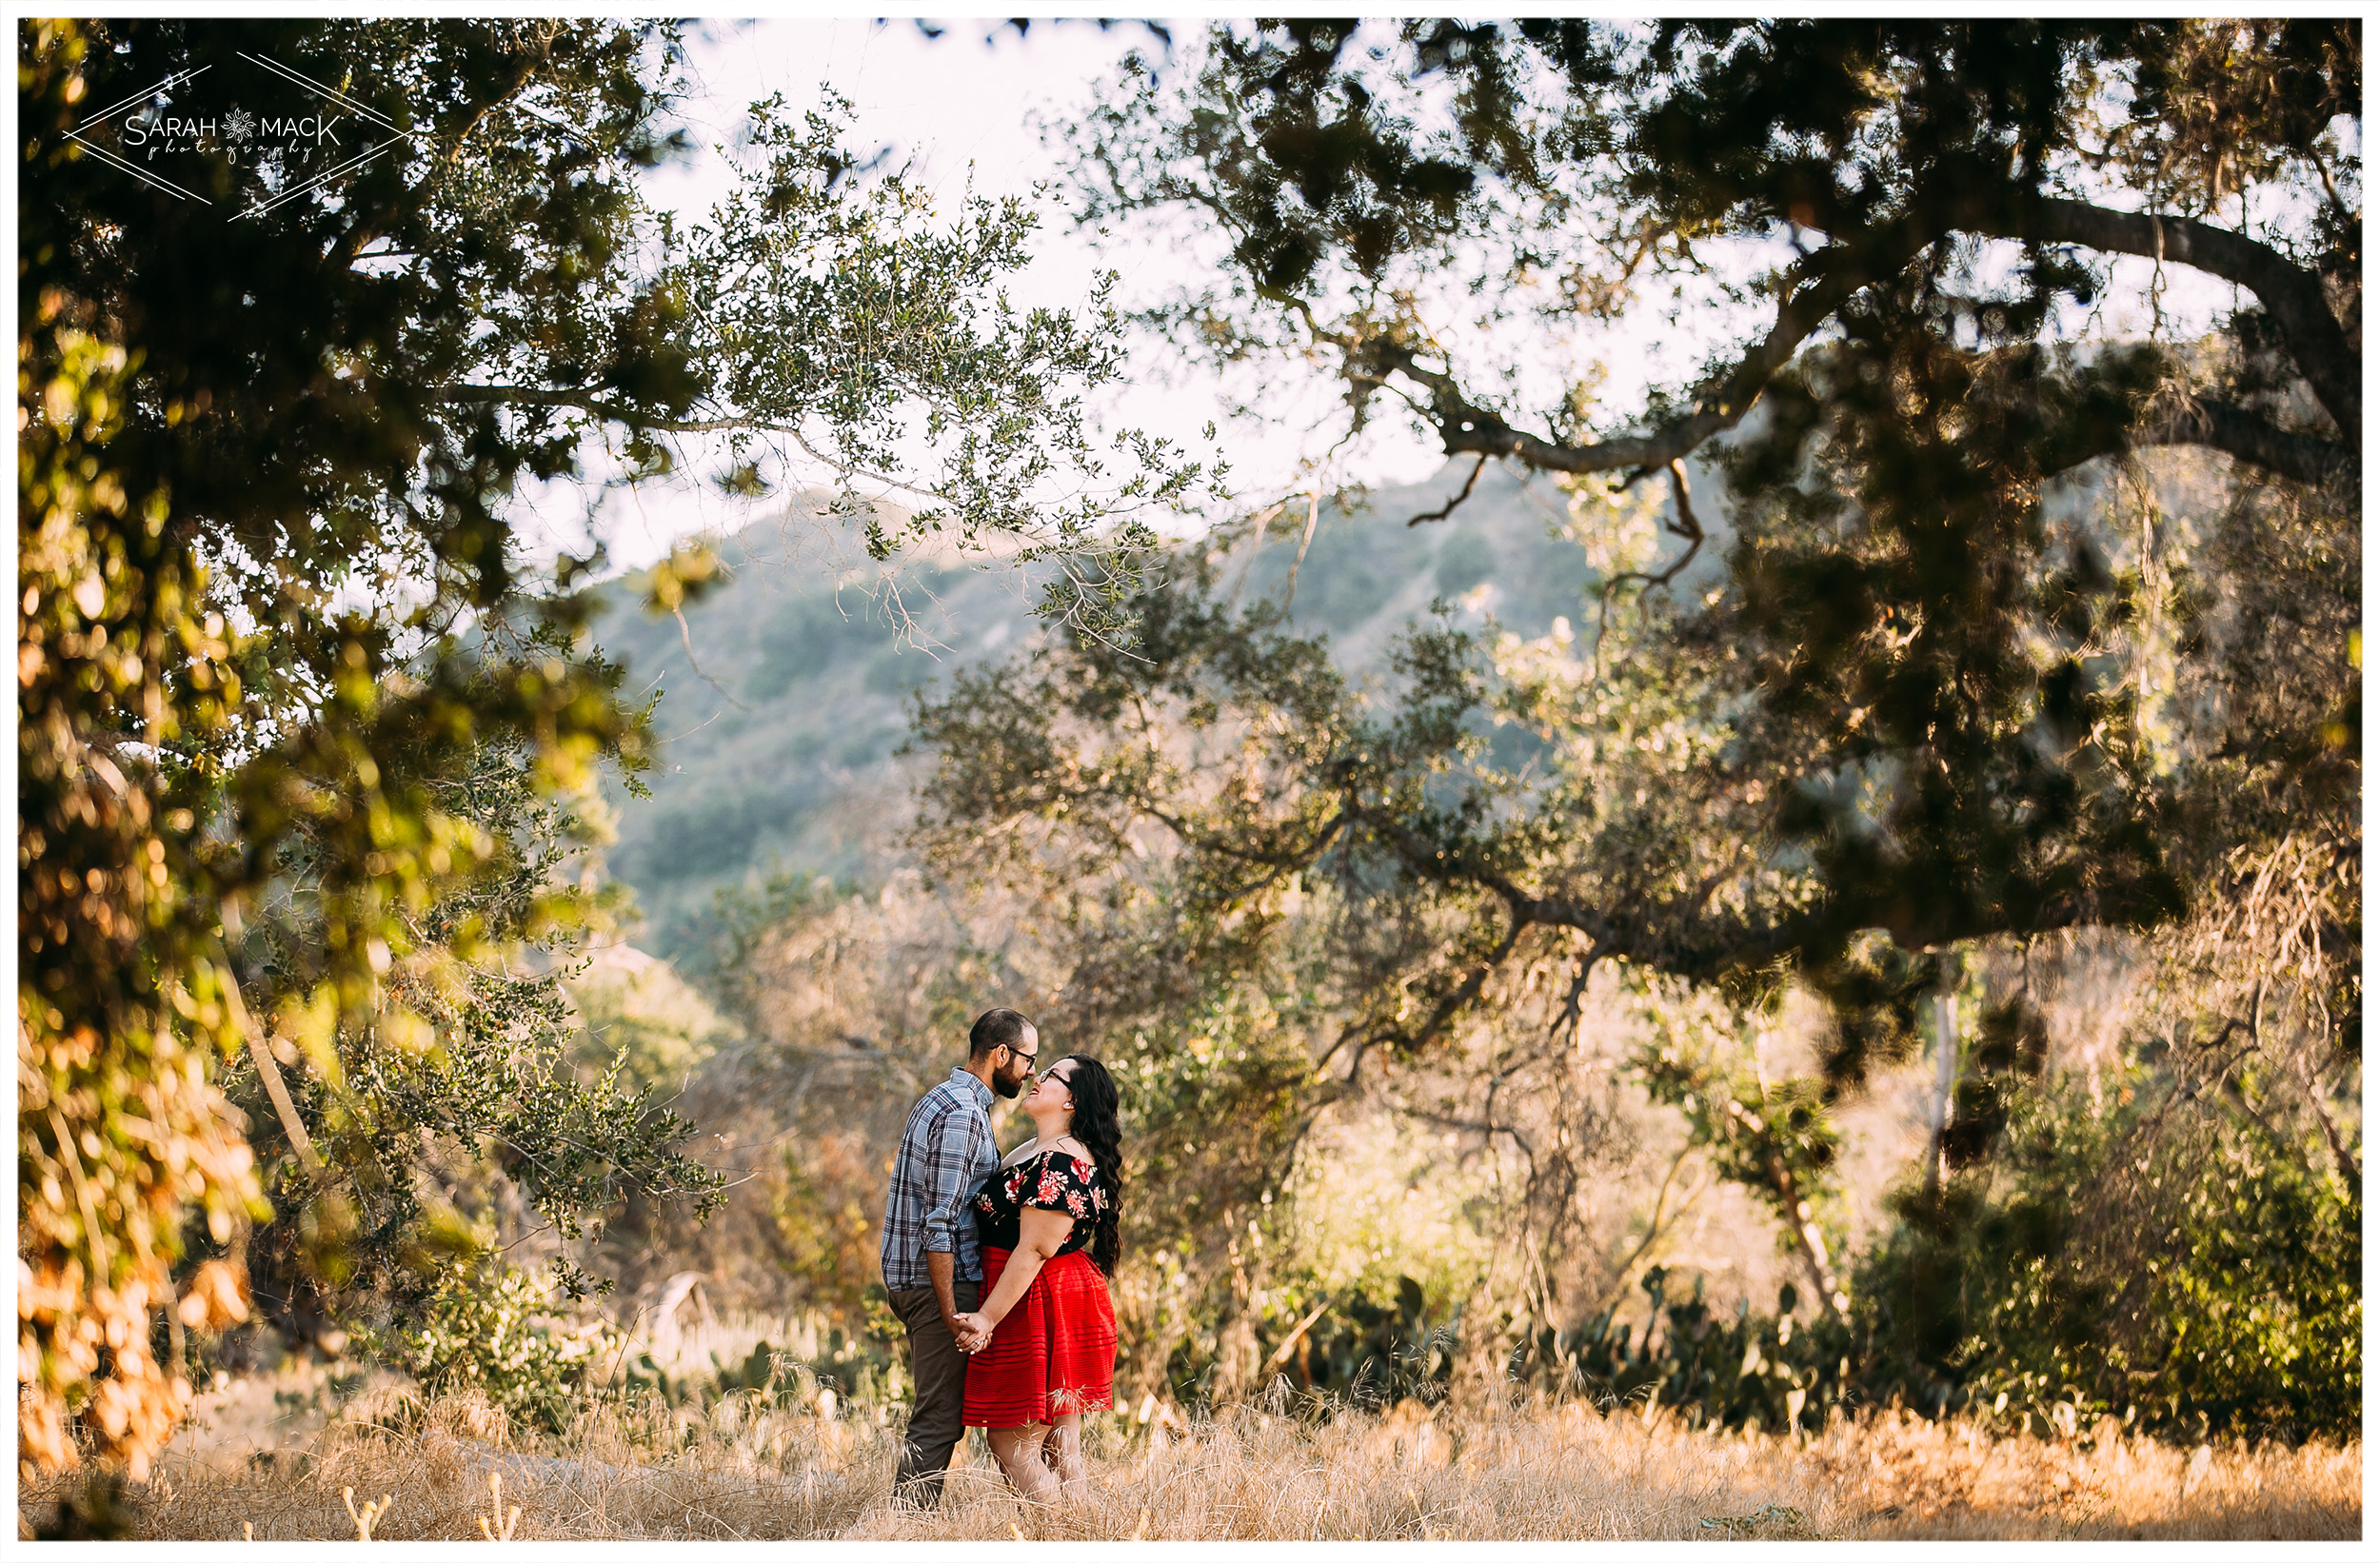 CK-Orange-County-Caspers-Park-Engagement-Photography-4.jpg